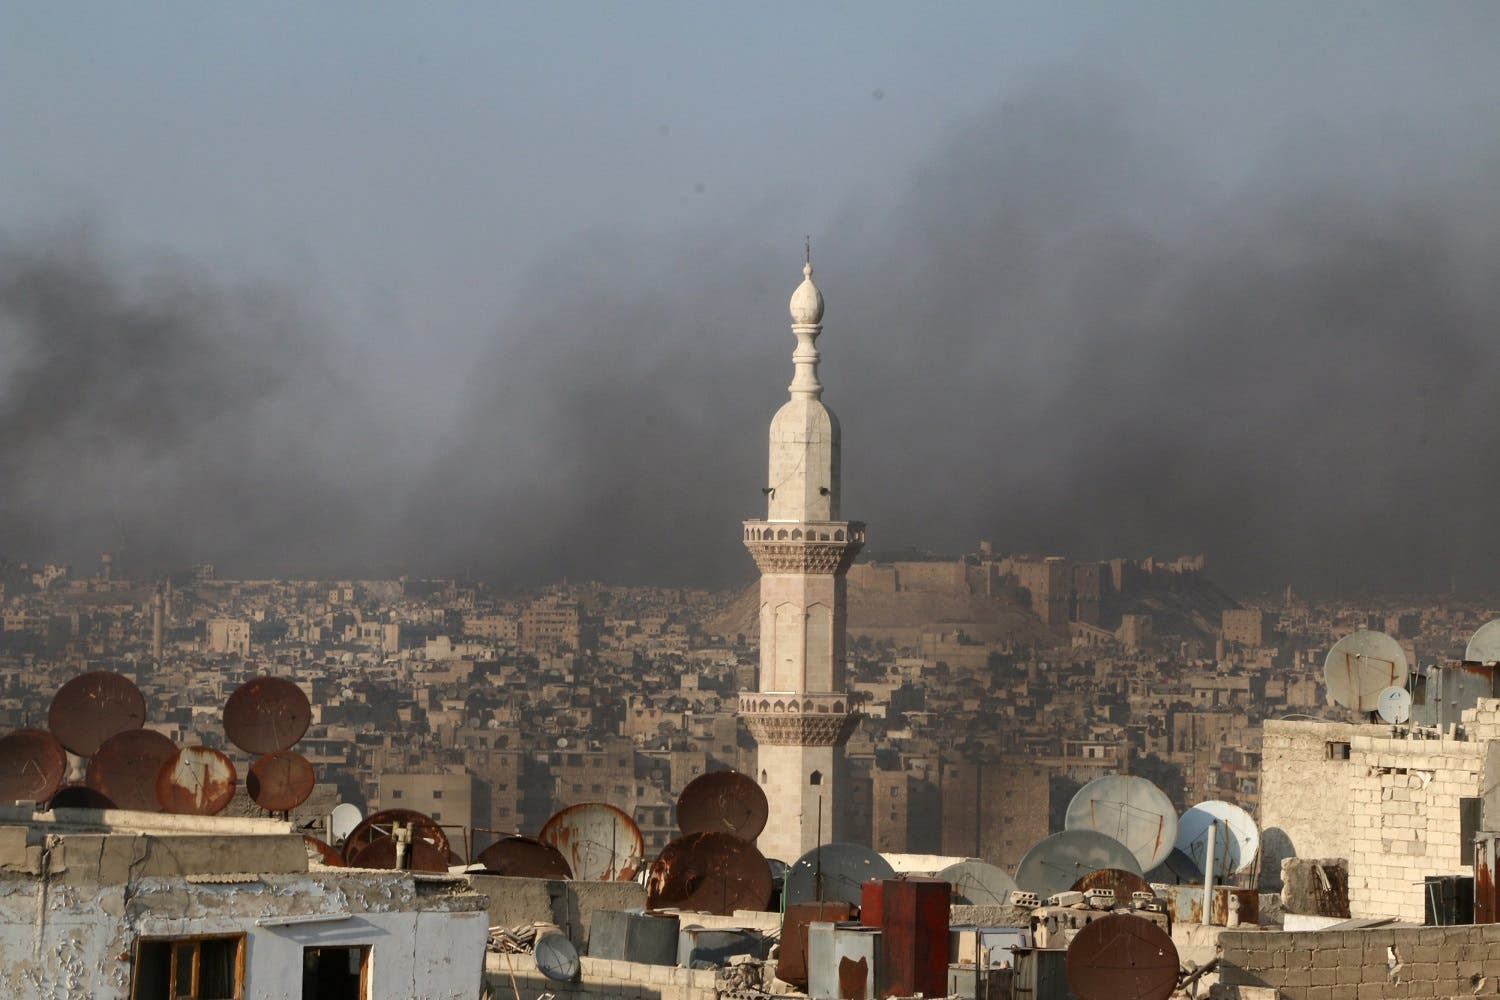 Smoke from burning tyres rises near a minaret of a mosque, which activists said are used to create smoke cover from warplanes, in Aleppo. (Reuters)